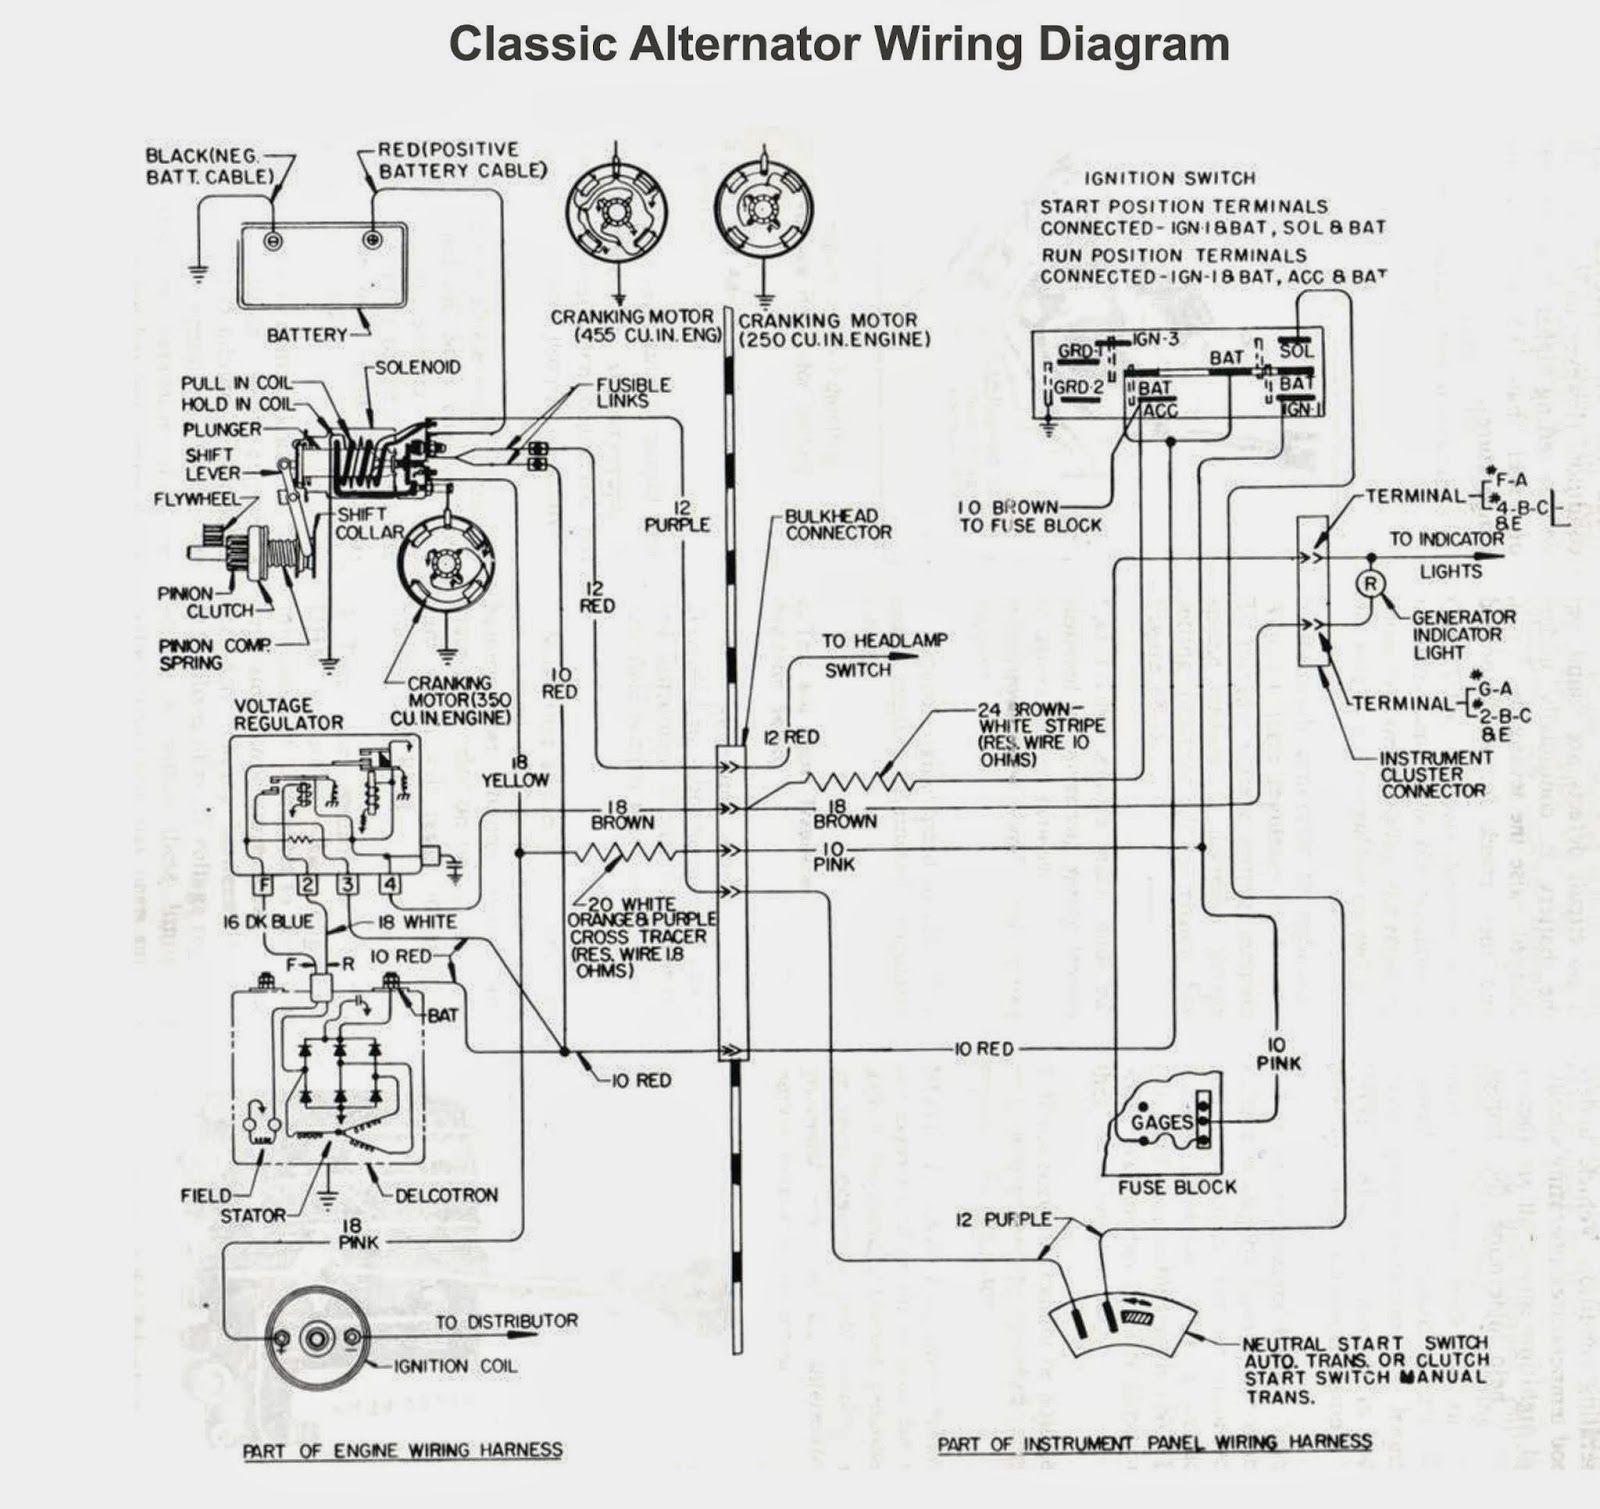 Old Car Alternator Wiring Diagram | Electrical Winding